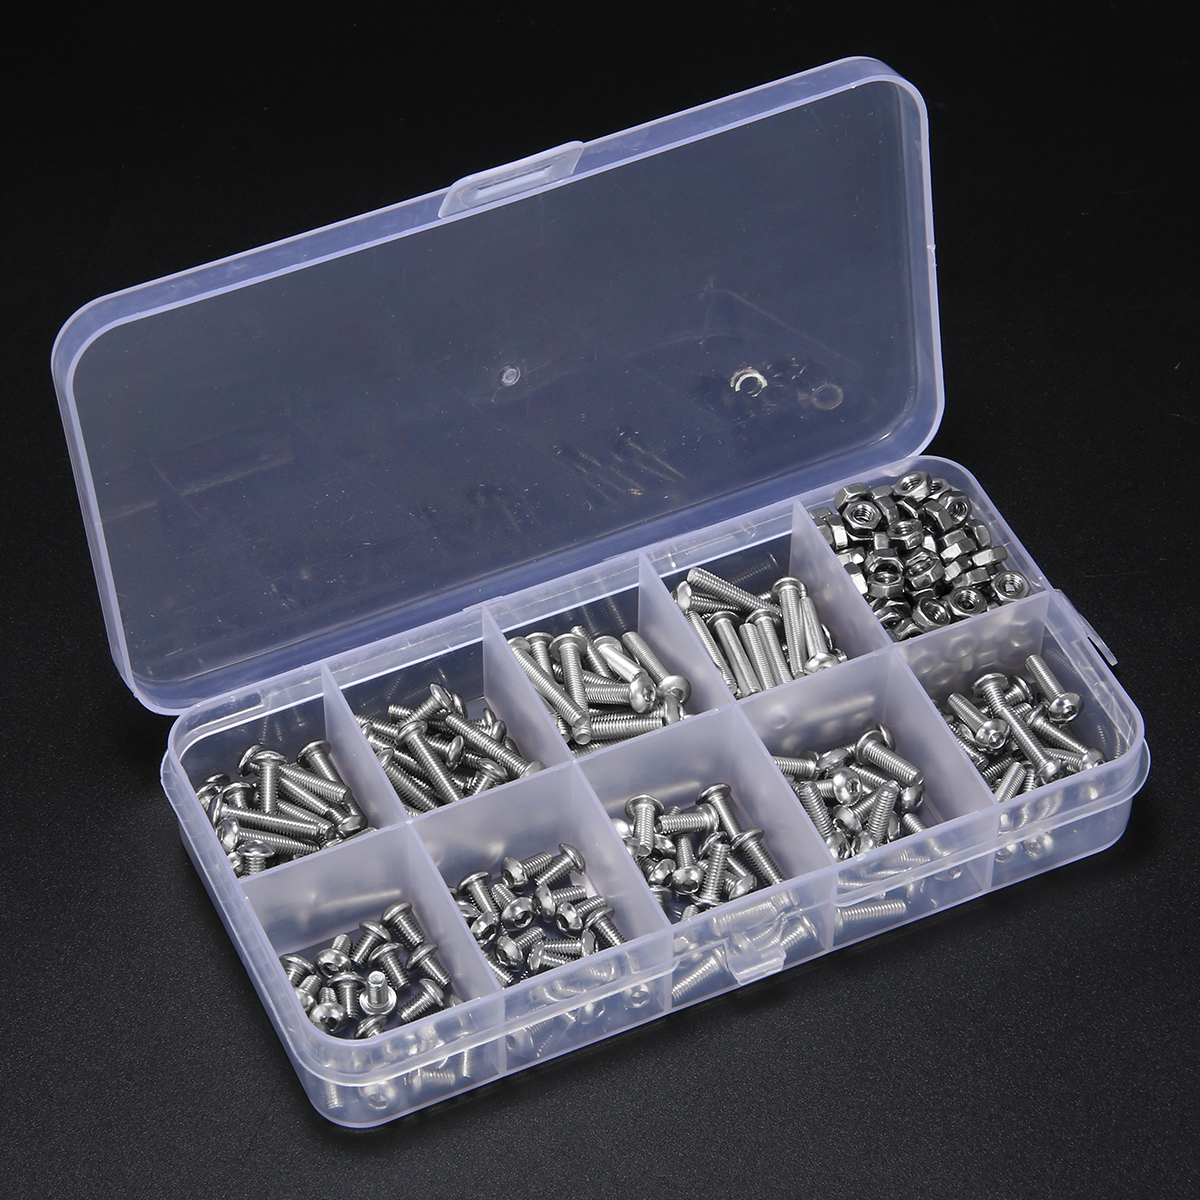 340pcs Assorted Stainless Steel M3 Screw 5/6/8/10/12/14/16/18/20mm with Hex Nuts Bolt Cap Socket Set